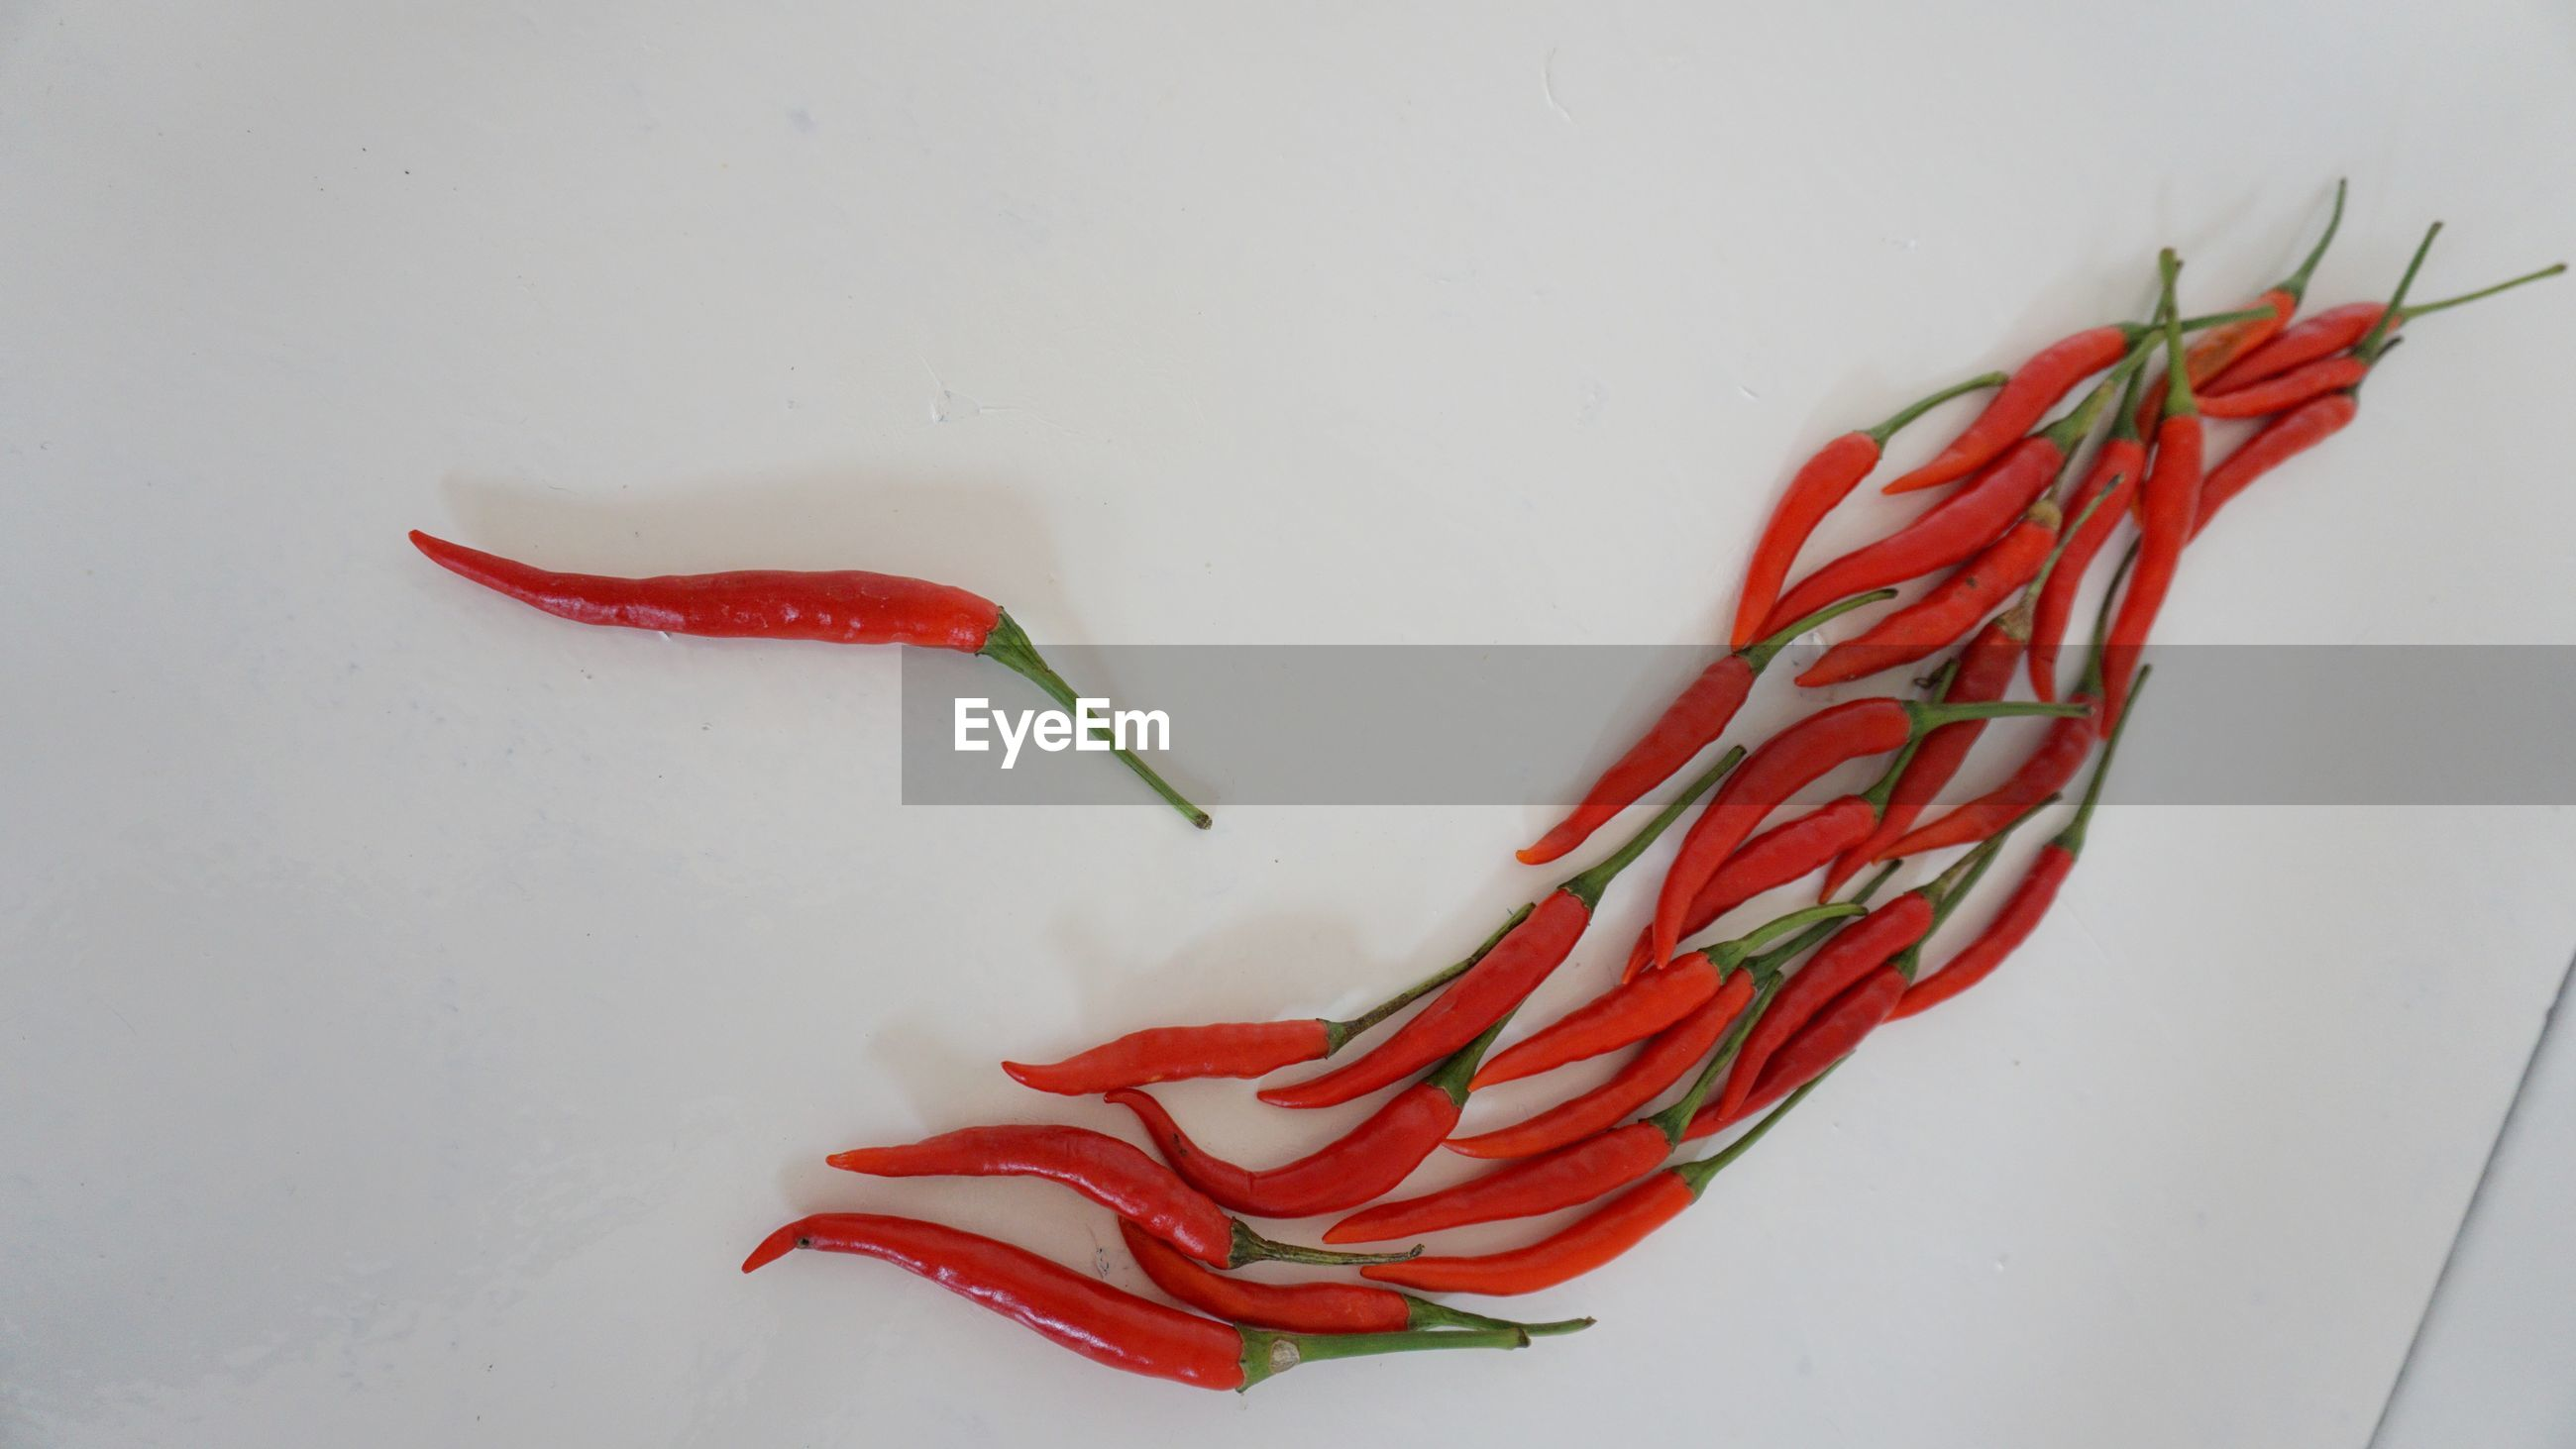 HIGH ANGLE VIEW OF RED CHILI PEPPERS ON WHITE BACKGROUND